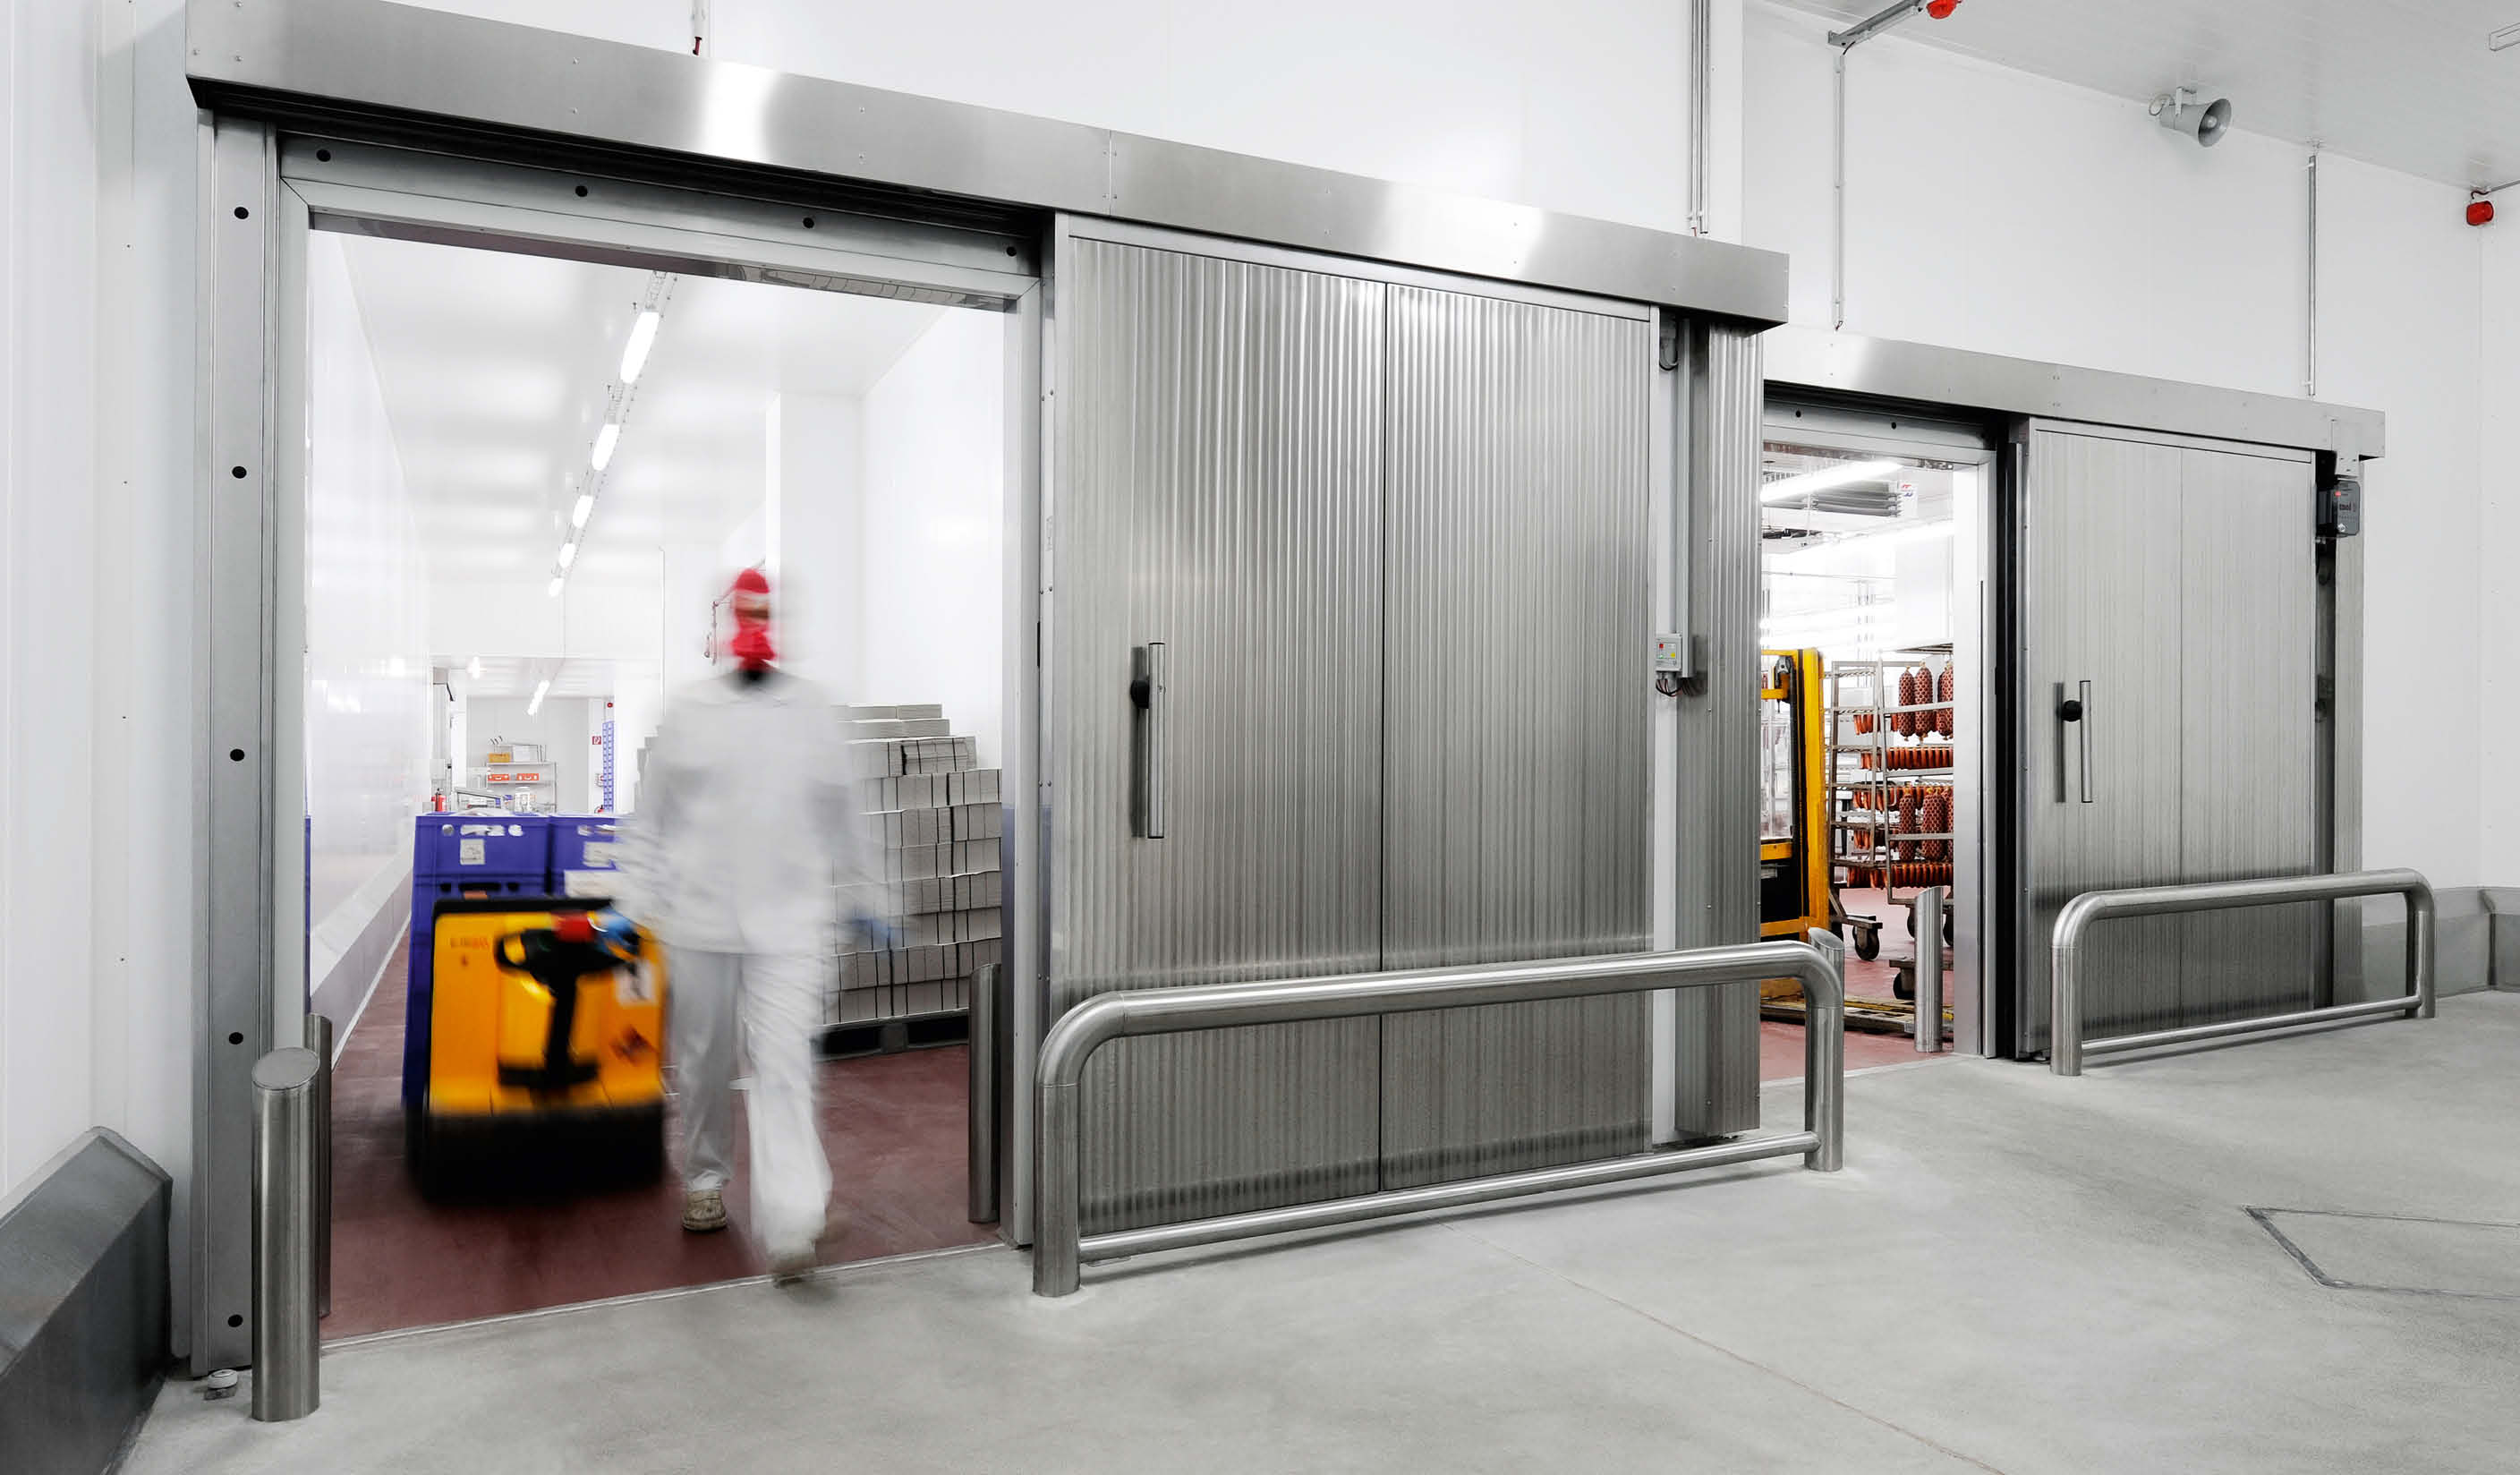 KTS-T90 Fire rated sliding door for freezers with 90 minutes fire protections properties and german approvals